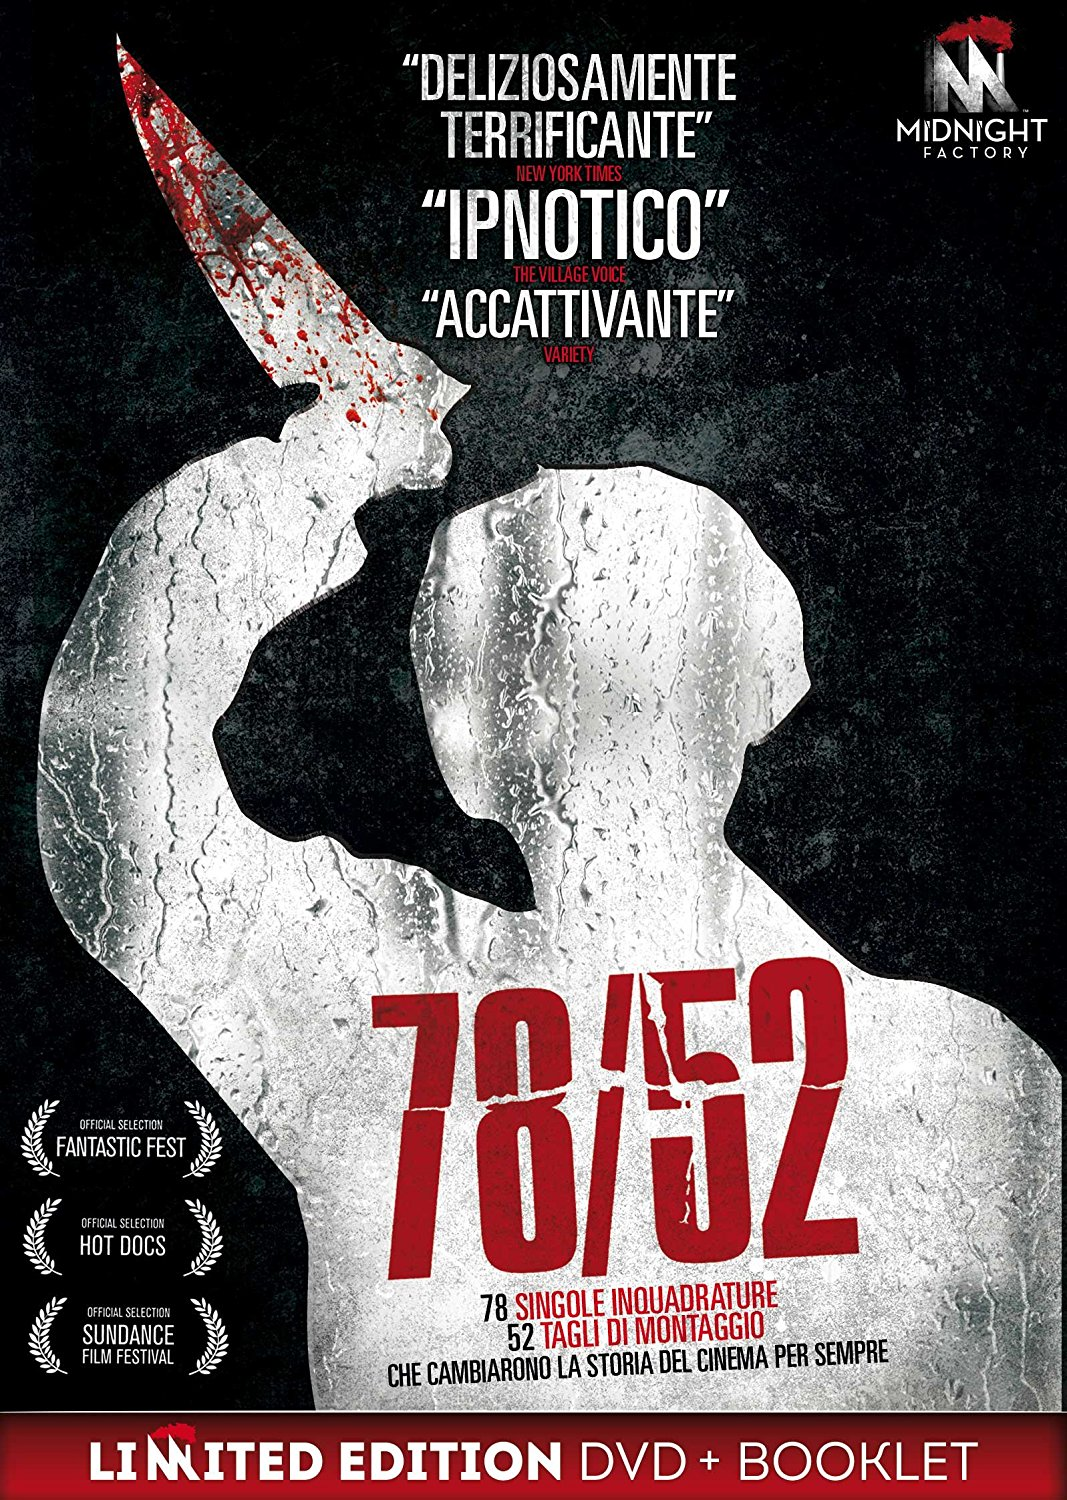 78/52 (LTD EDITION) (DVD+BOOKLET) (DVD)